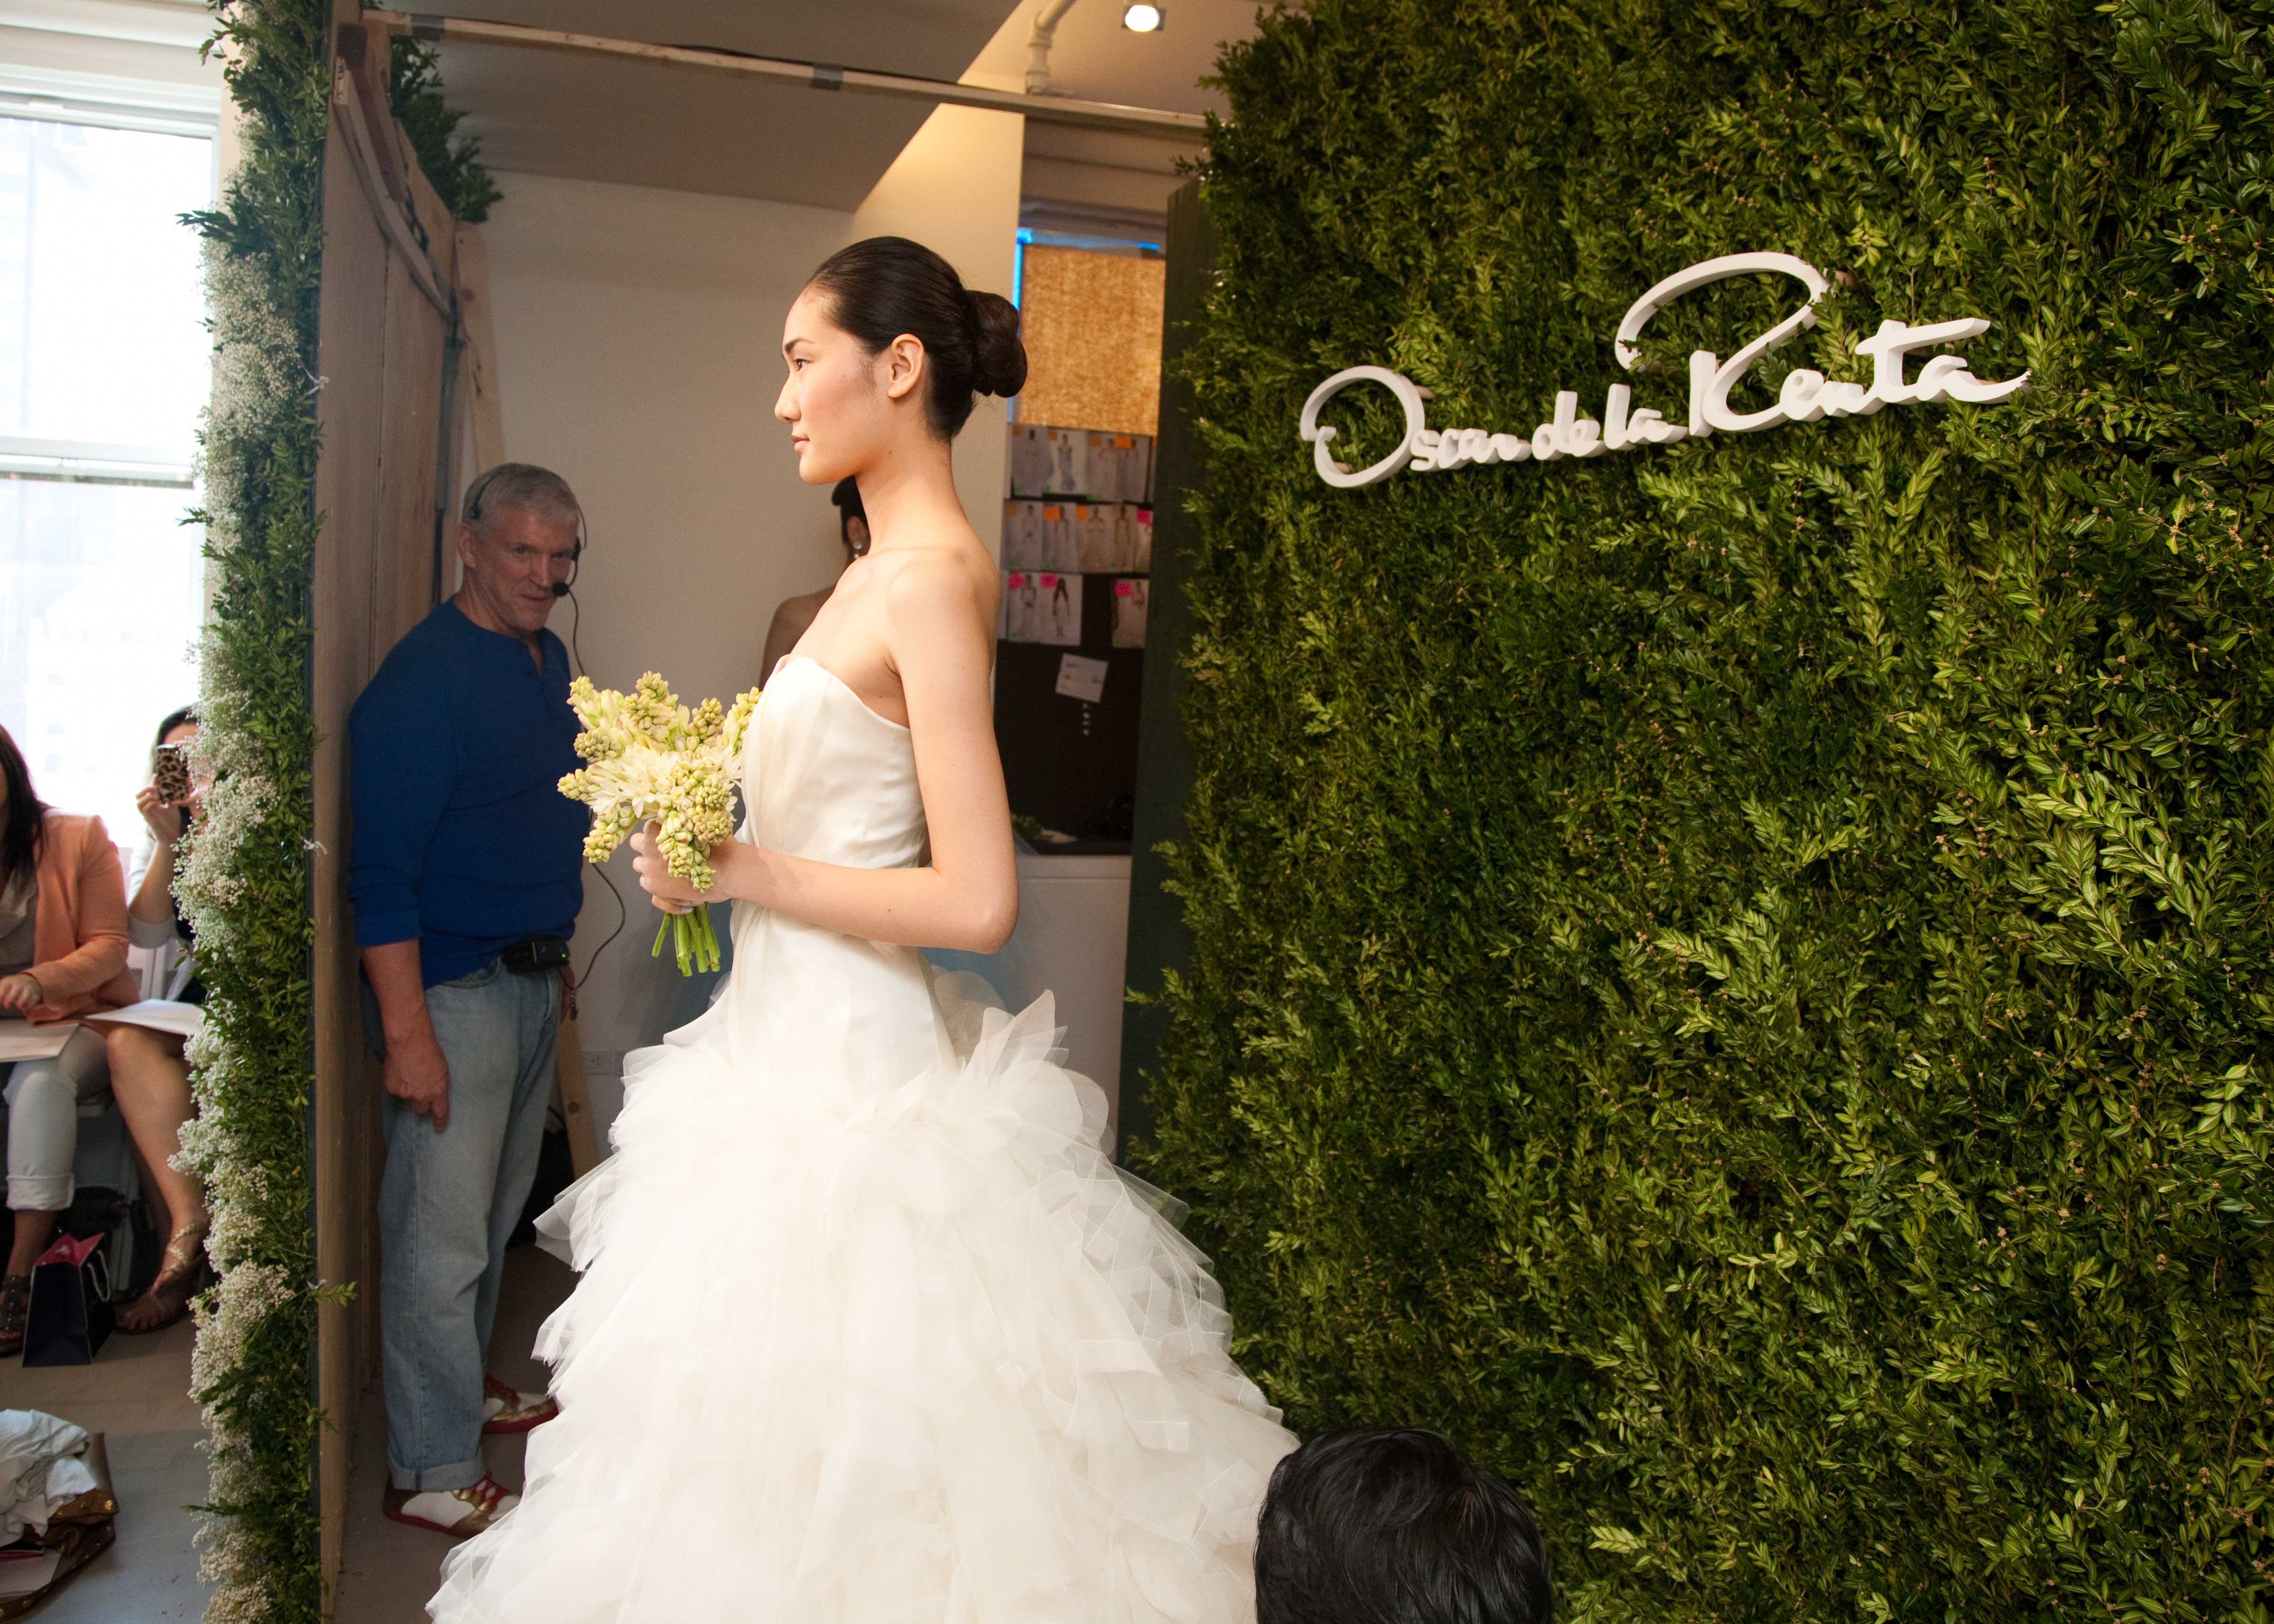 Bridal-beauty-inspiration-2013-wedding-dress-collections-oscar-de-la-renta-wedding-hair-ideas-buns-2.original